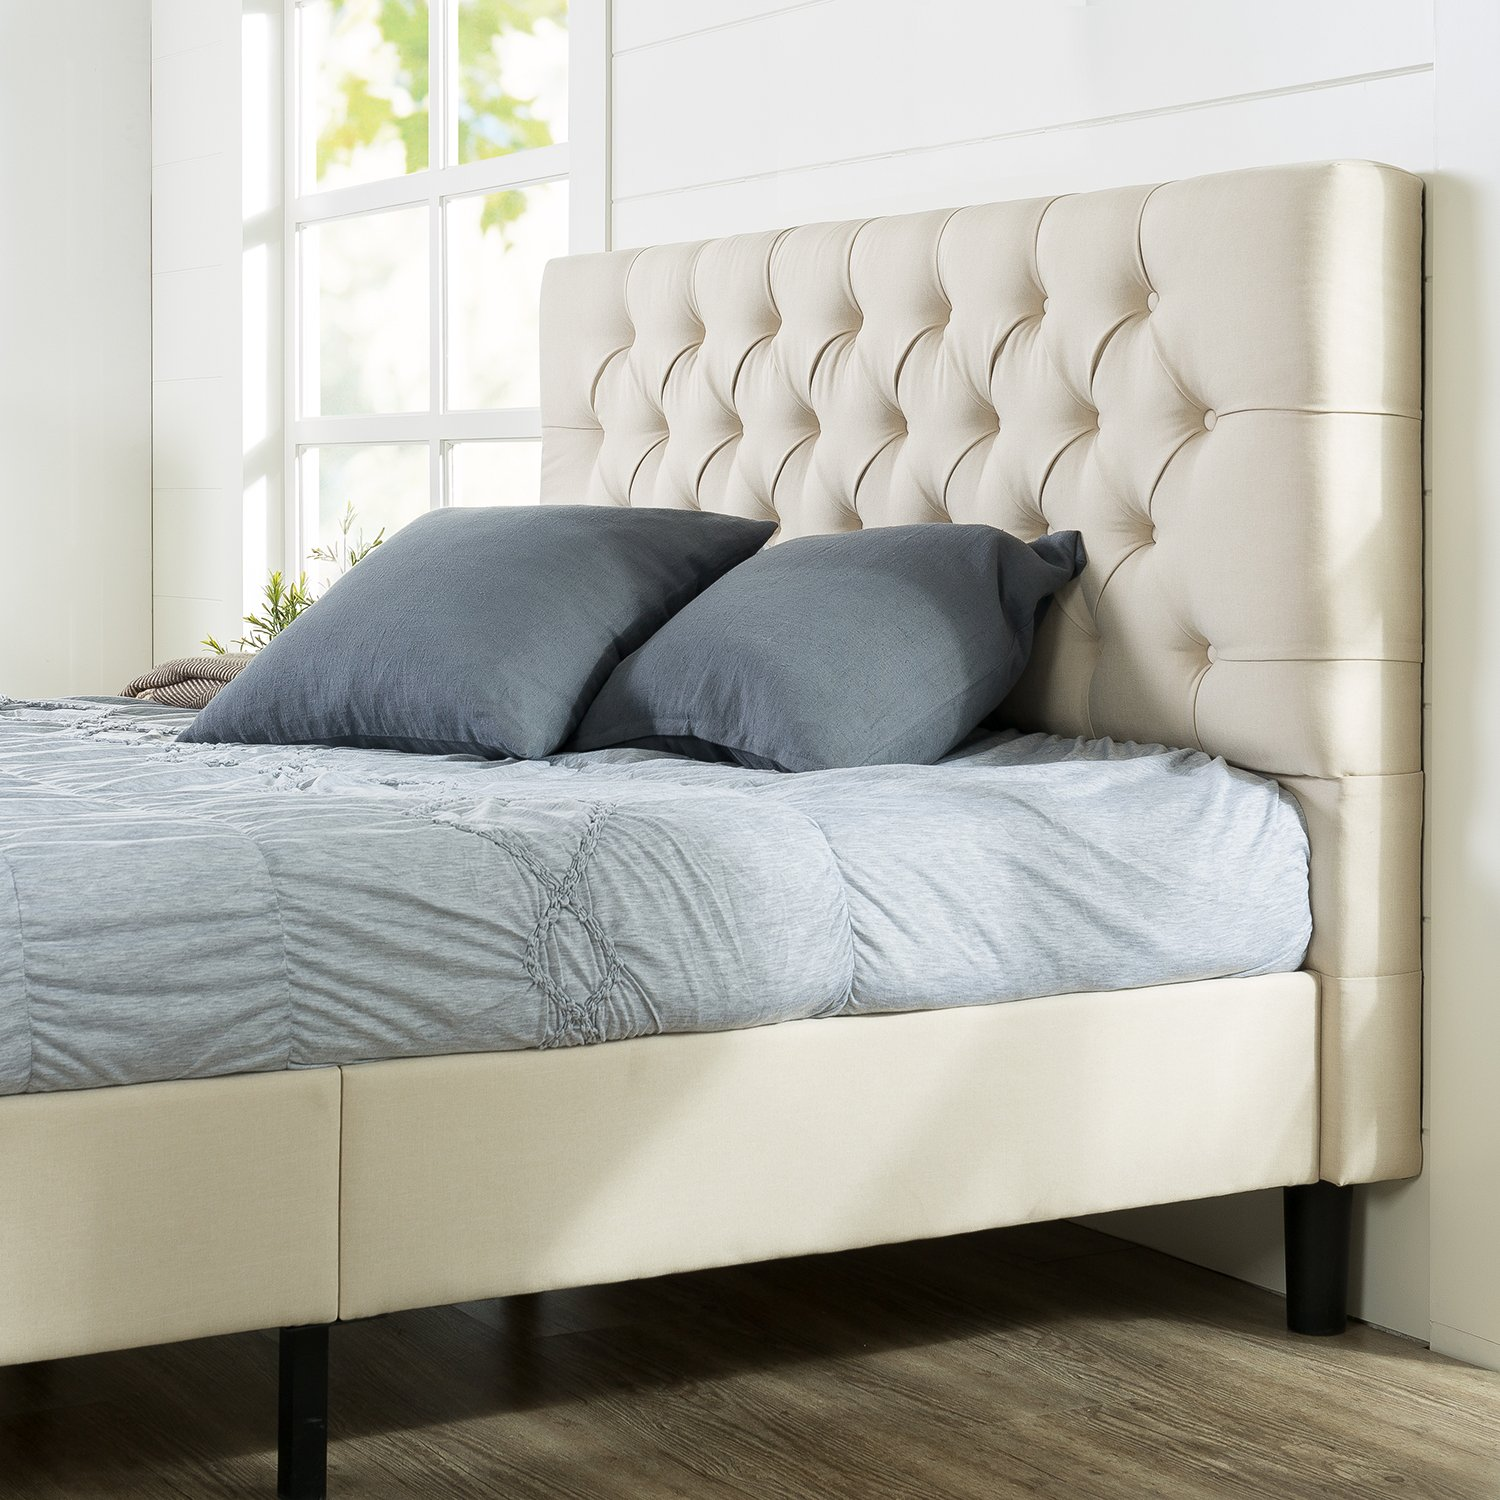 Zinus Misty Upholstered Modern Classic Tufted Platform Bed / Mattress Foundation / Easy Assembly / Strong Wood Slat Support, Queen by Zinus